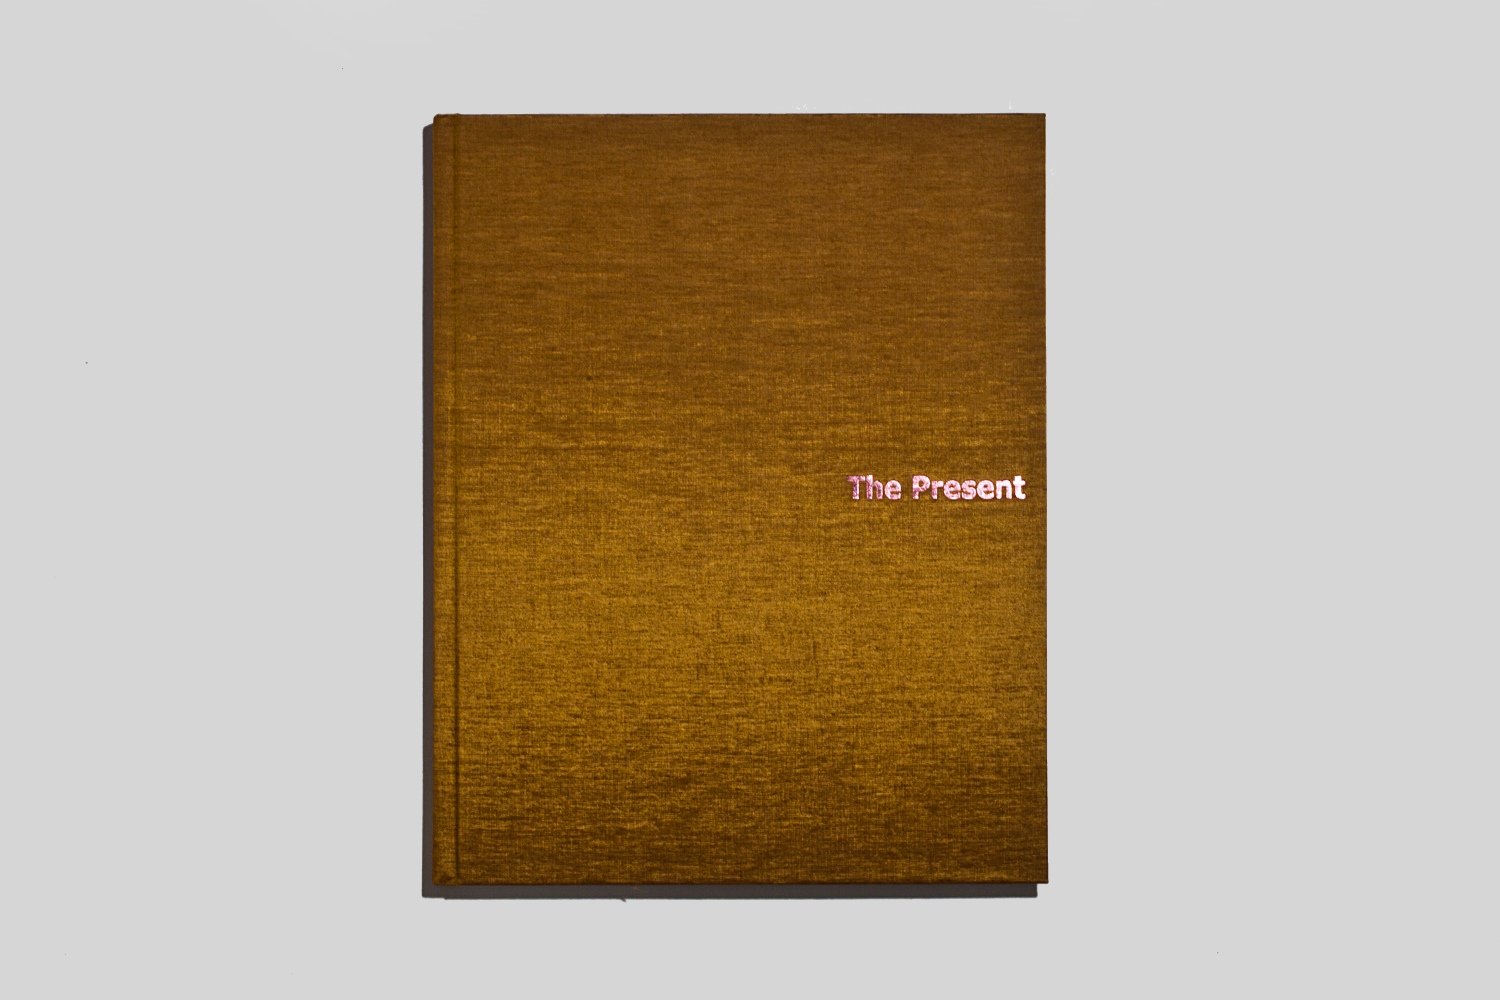 The Present (MACK) by Paul Graham, selected by Aaron Schuman, photographer, writer, curator, and editor of SEESAW